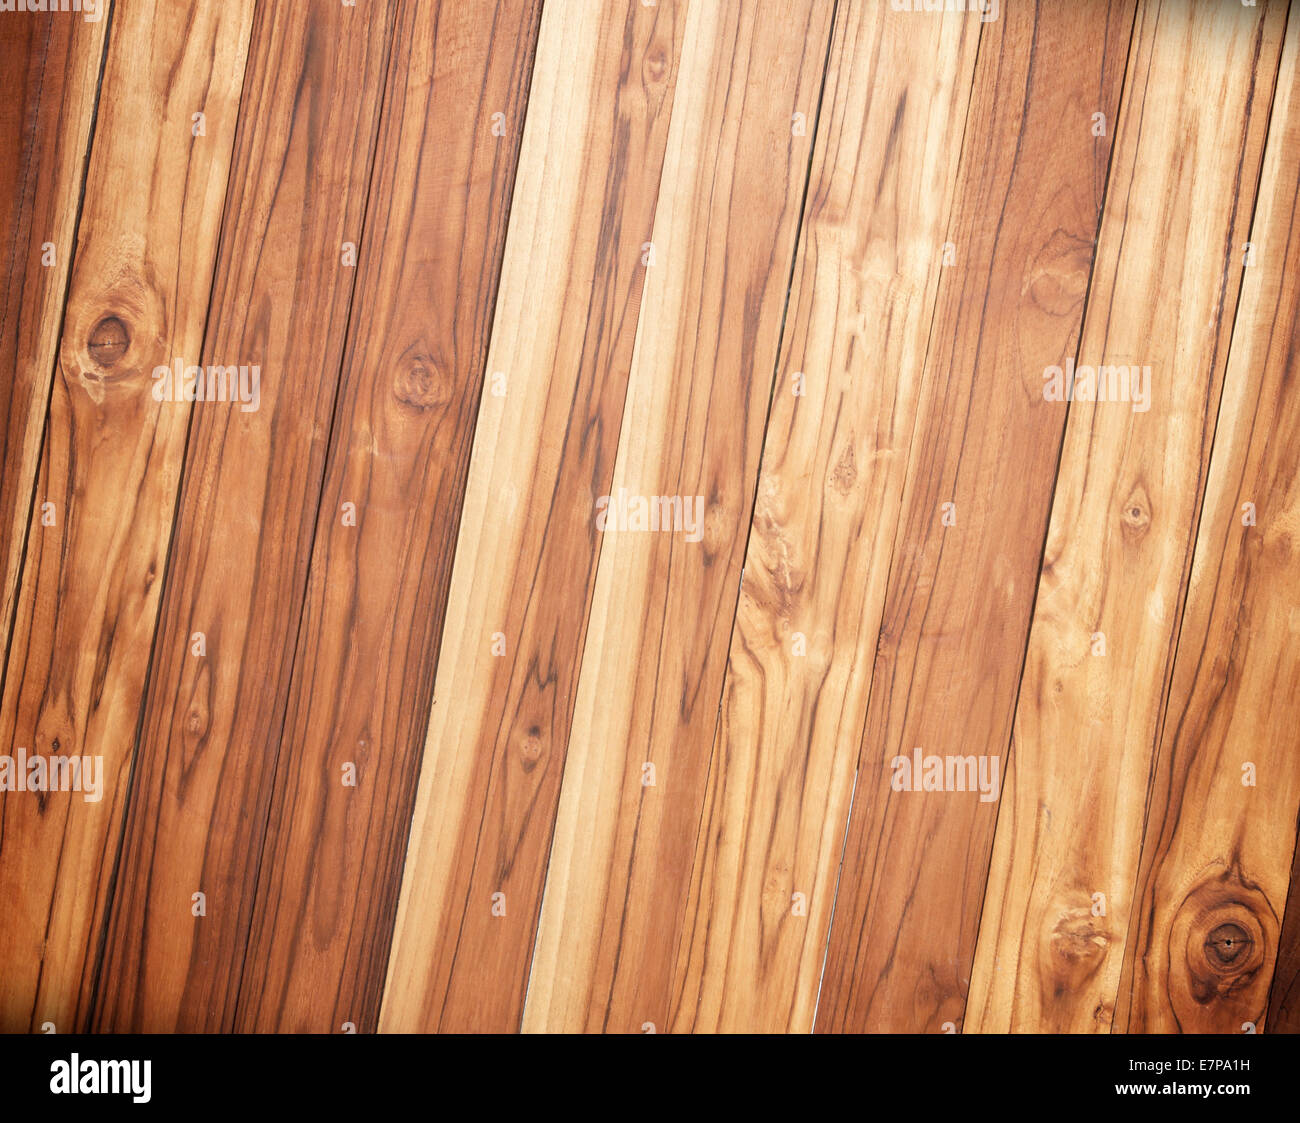 wood texture with natural patterns abstract background. - Stock Image